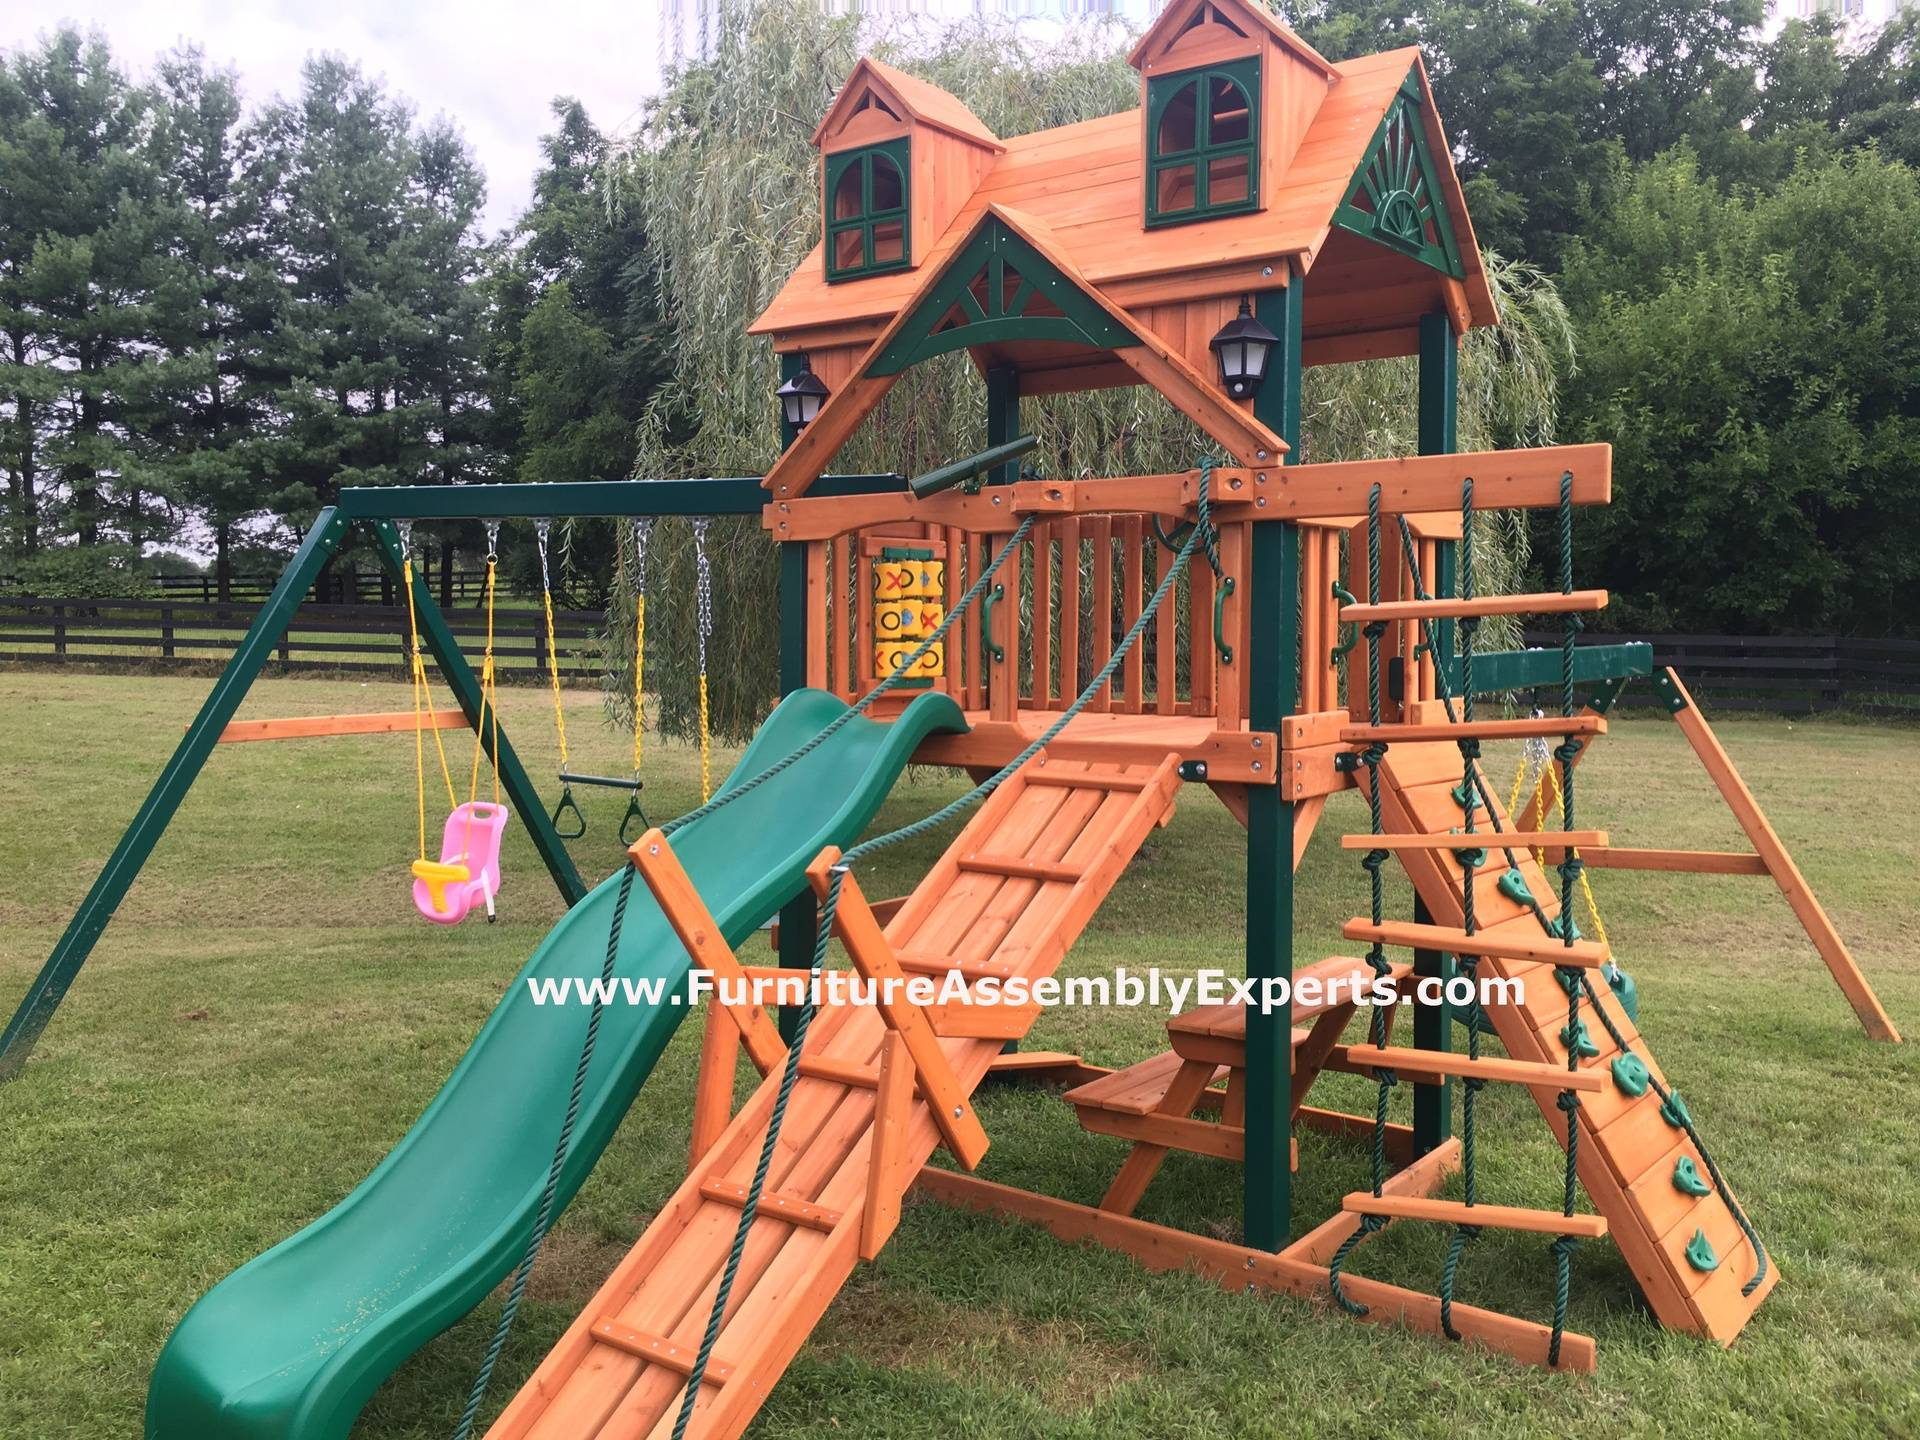 Gorilla frontier cedar playset assembly in DC MD VA